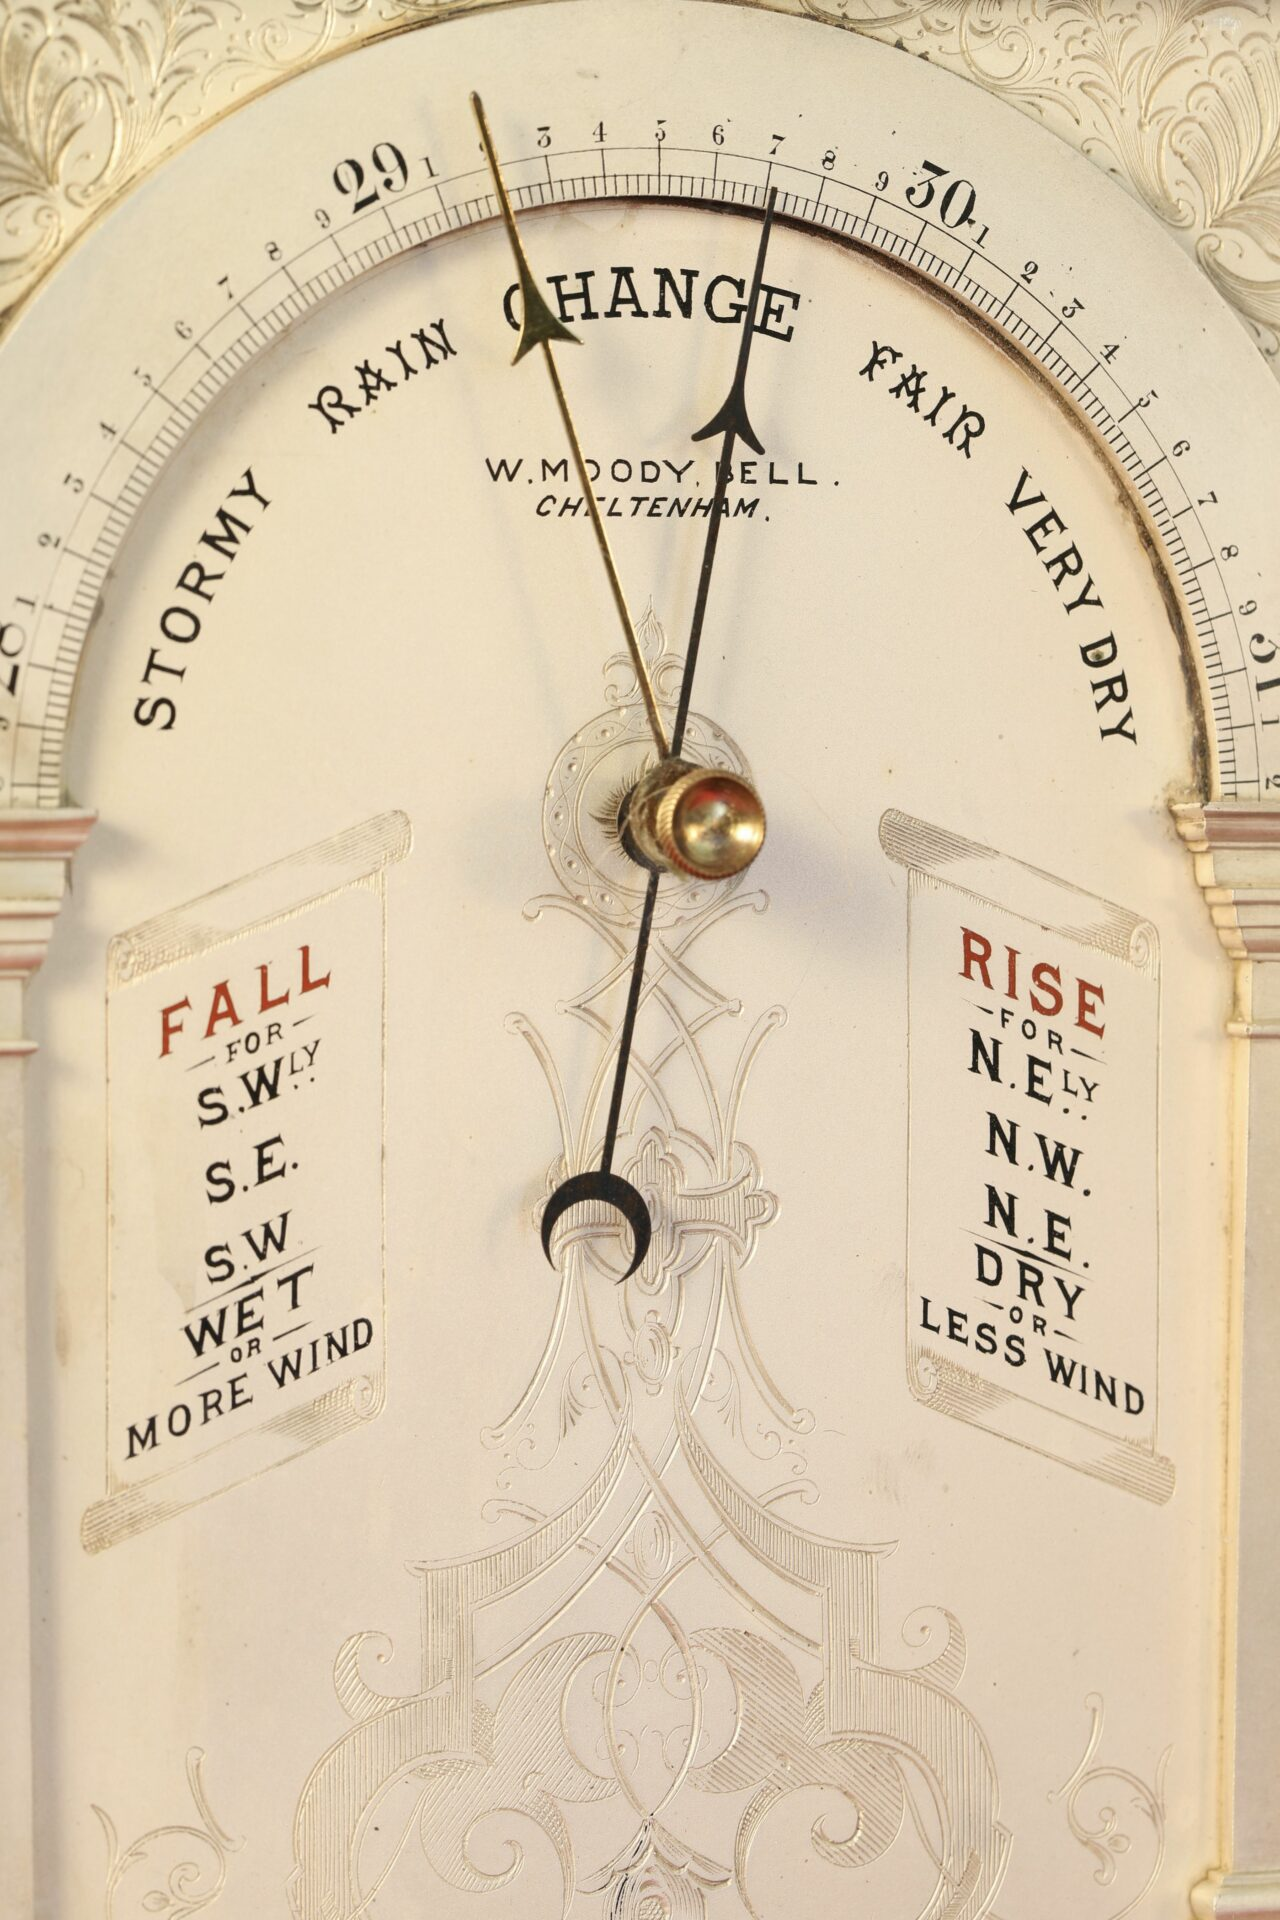 Close up of dial of Moody Bell Table Barometer c1880 showing arch and decoration